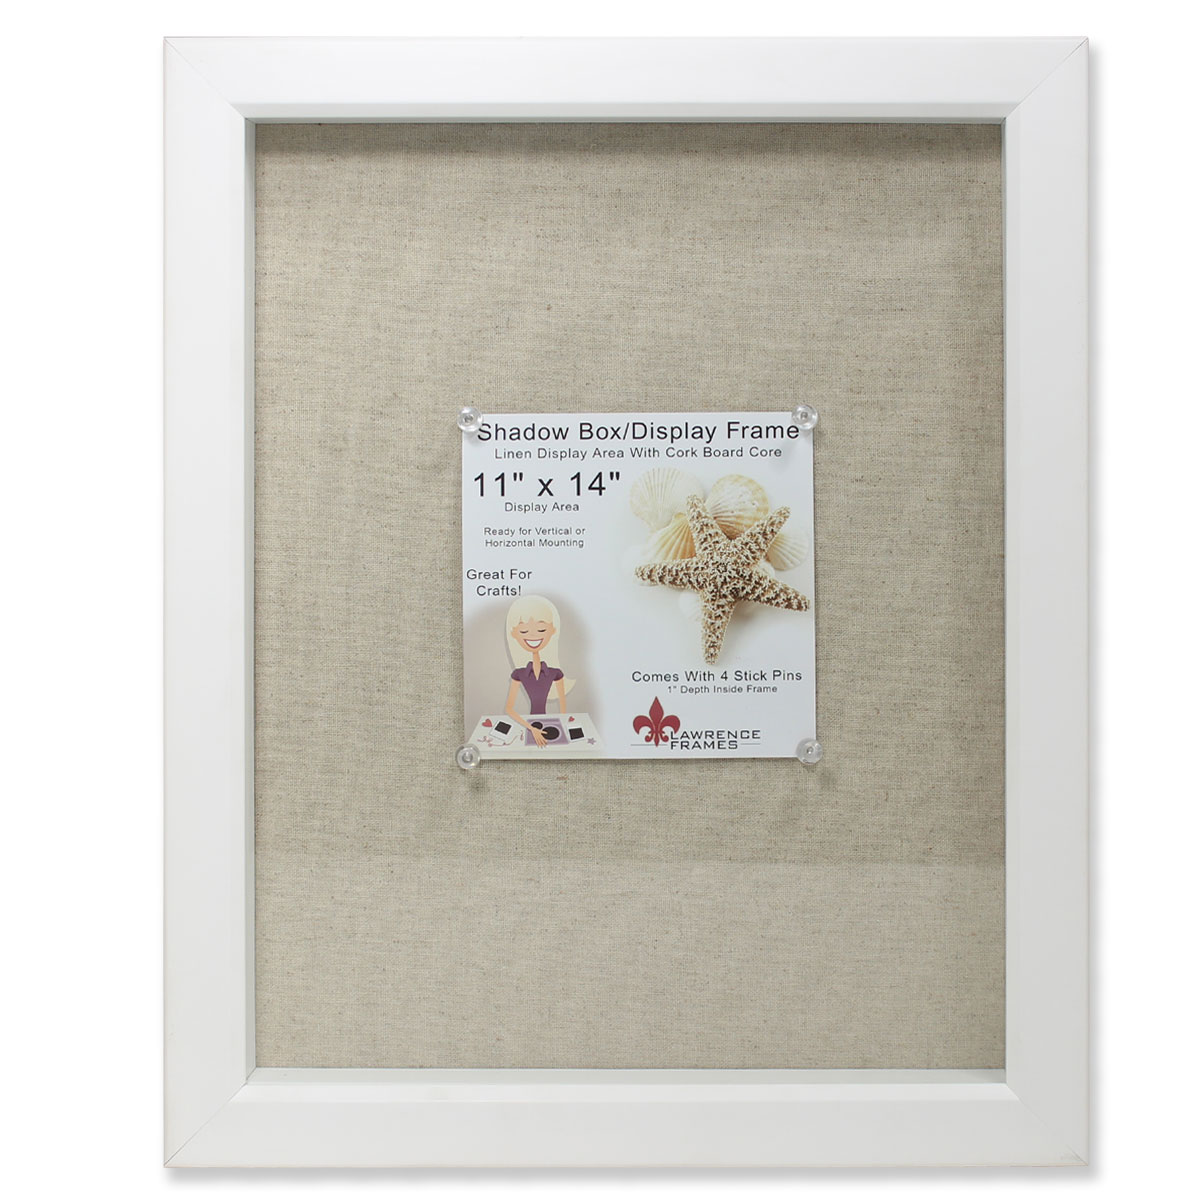 11x14 White Shadow Box Frame - Linen Inner Display Board